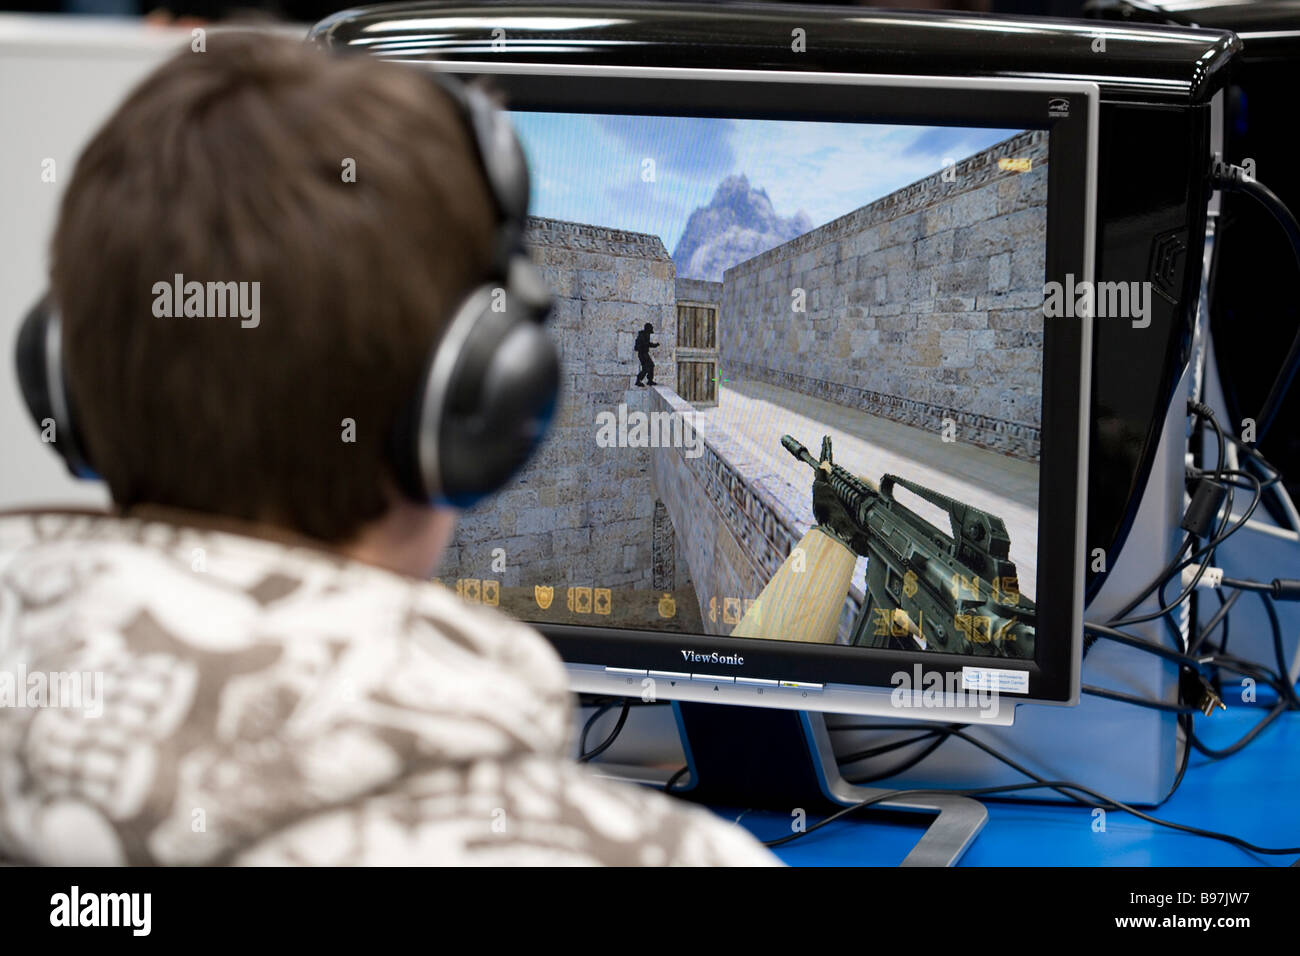 Teenager playing a violent game egoshooter at the computer - Stock Image